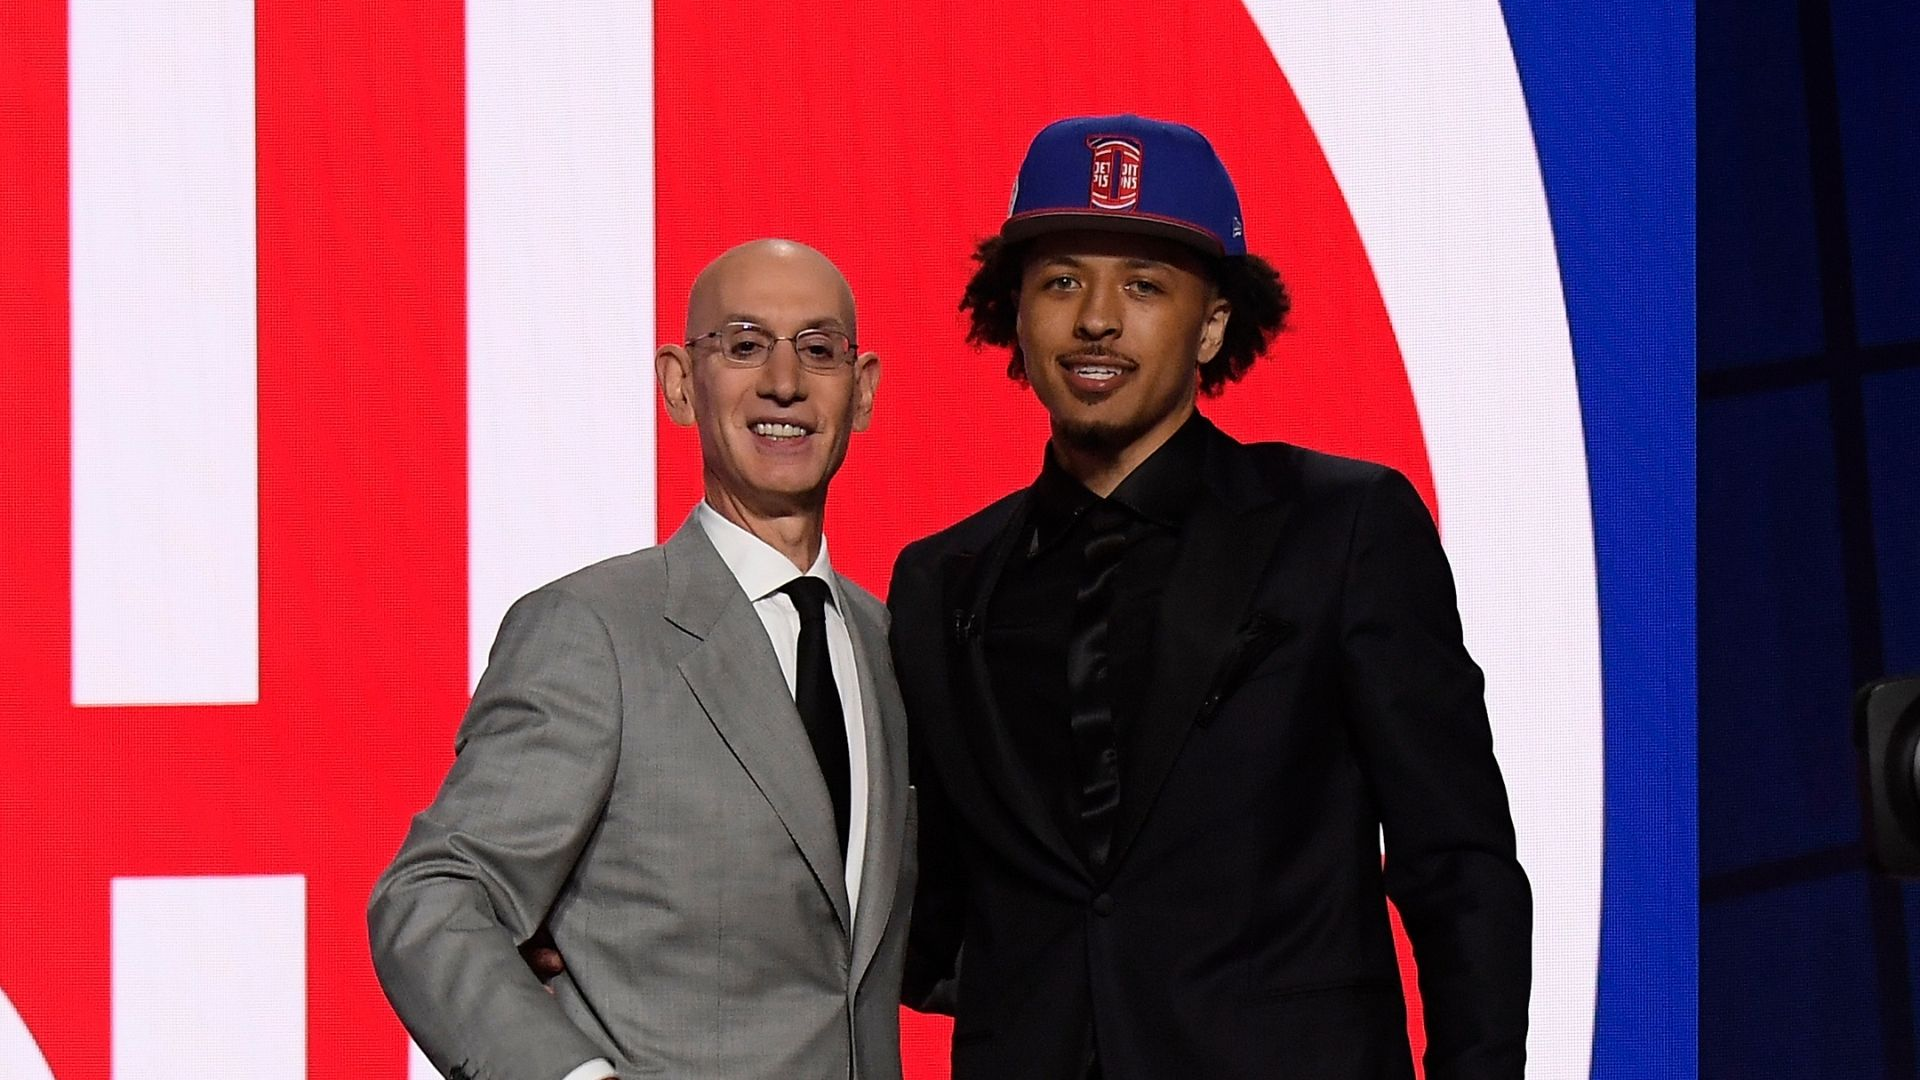 1627900048 924 Cade Cunningham and the illusion of joining the Detroit Pistons